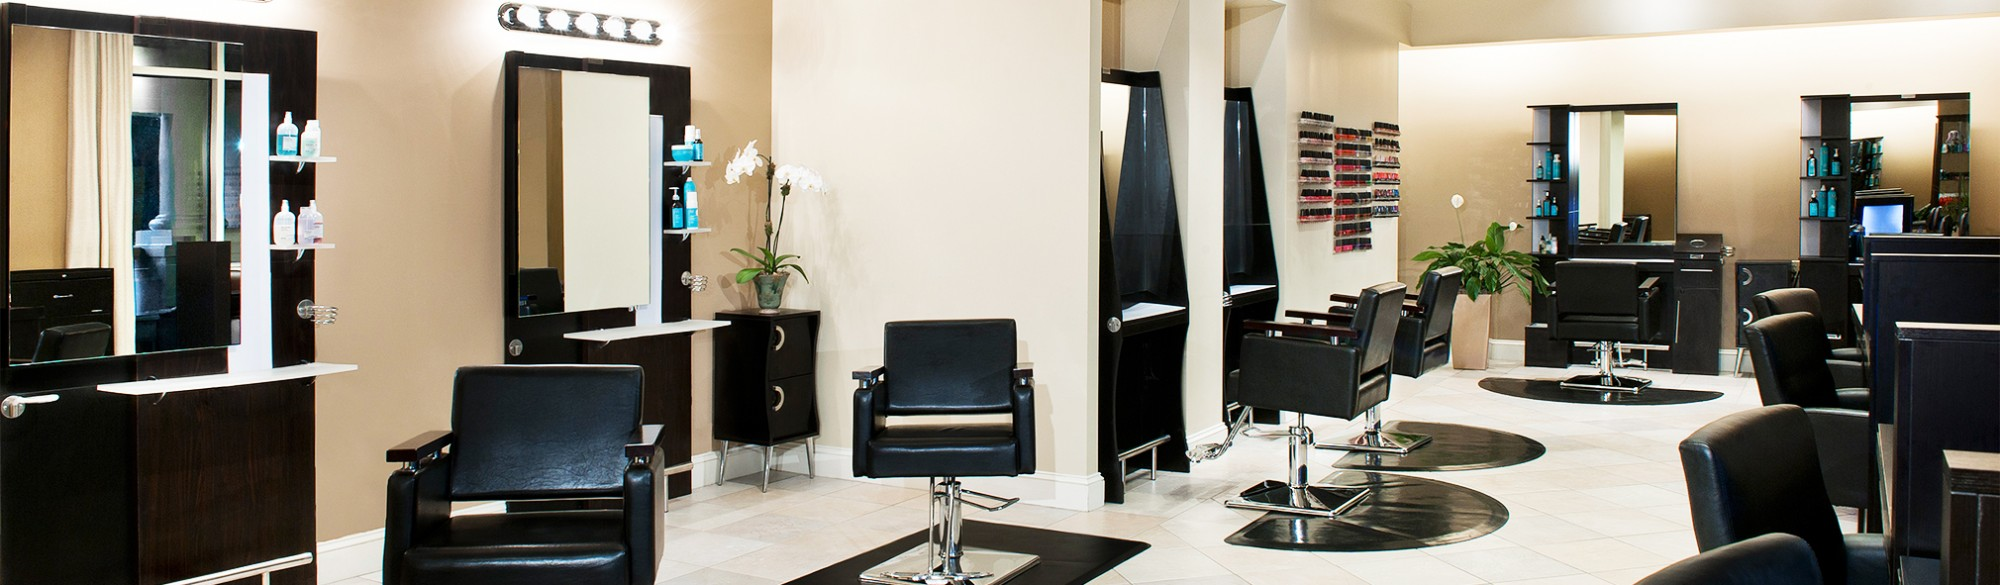 Salon hair services the spa at ballantyne charlotte nc for 365 salon success